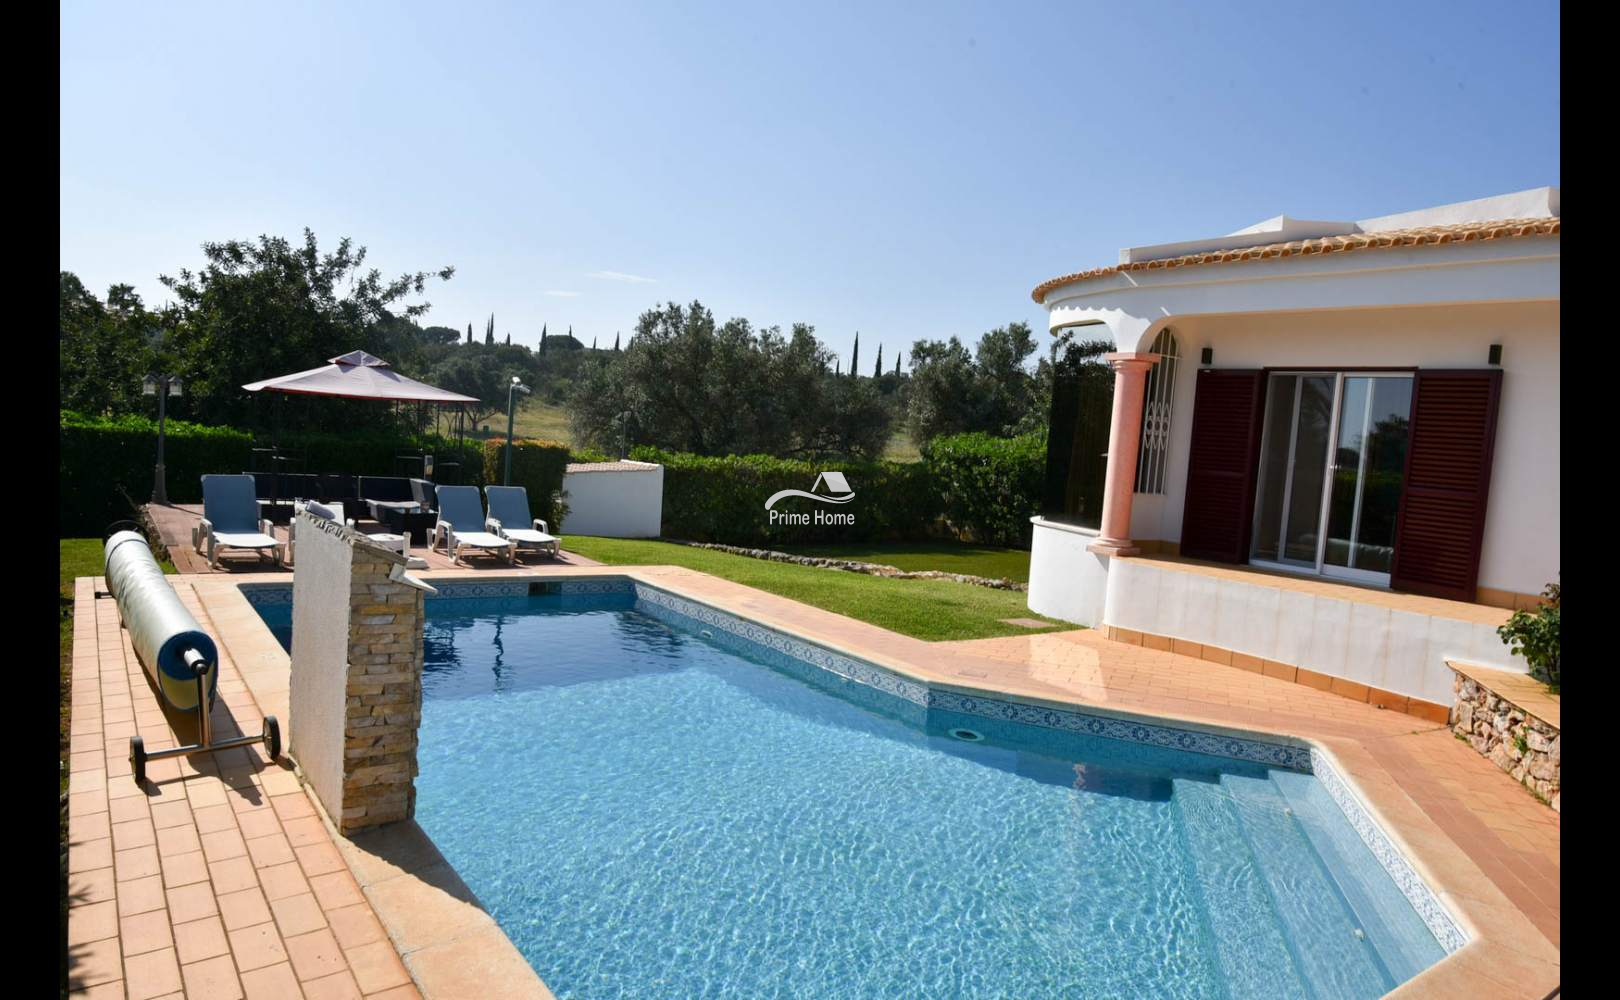 Charming 3 Bedroom Villa for sale in one of the best areas of Vilamoura (30)